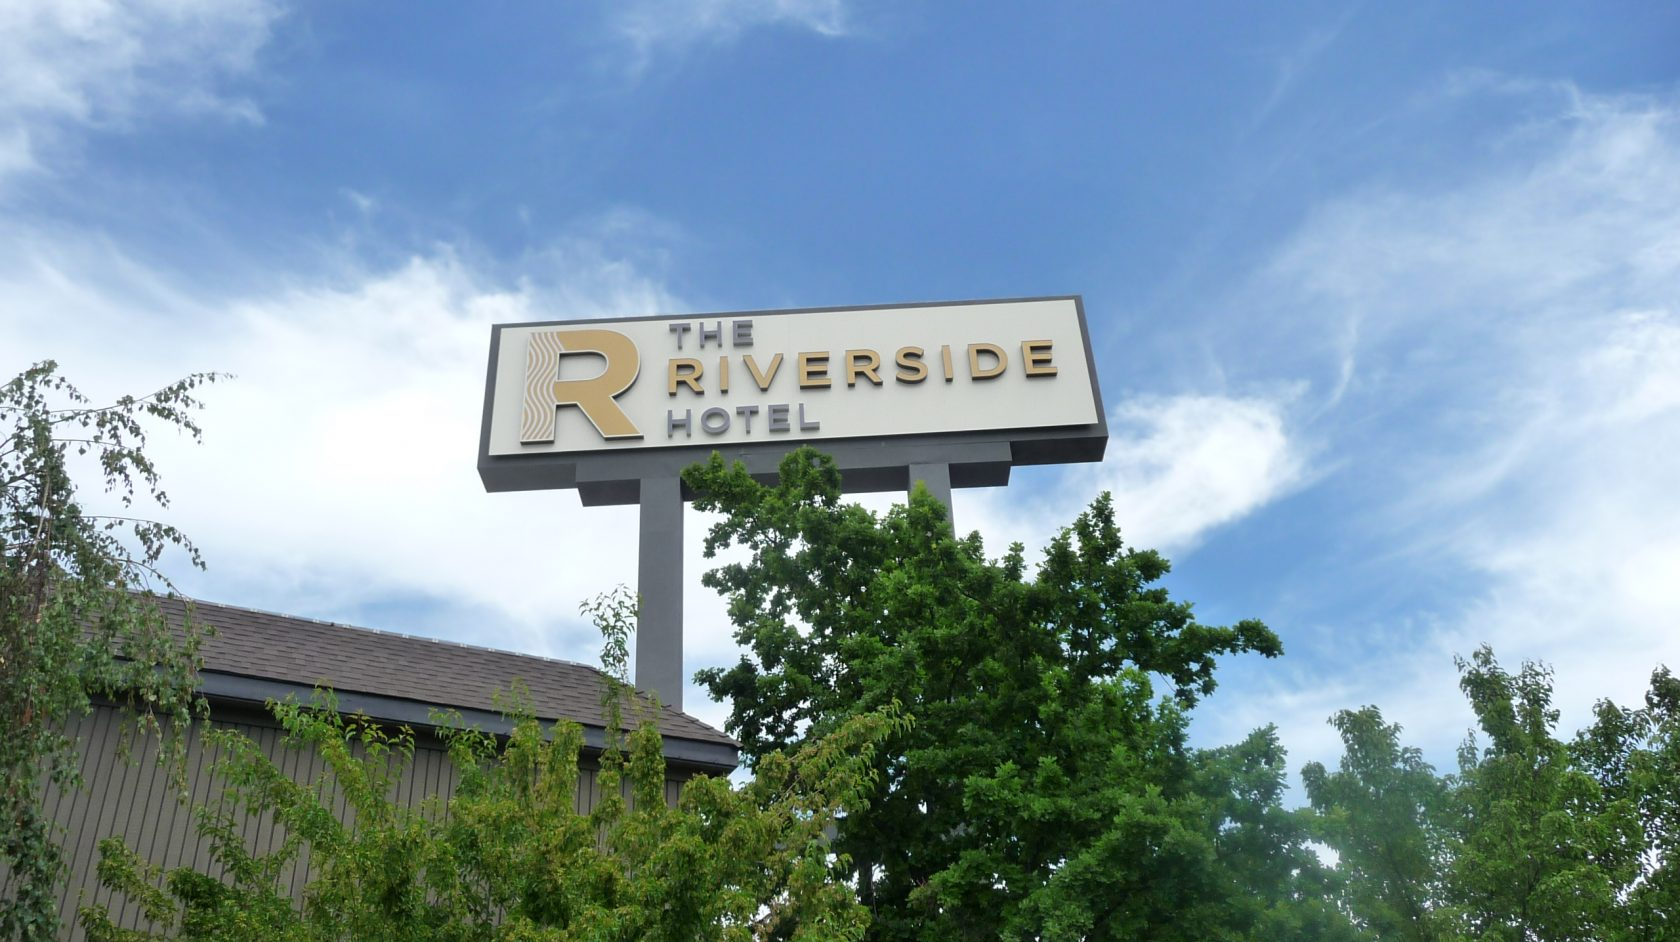 hotels near boise airport the riverside hotel. Black Bedroom Furniture Sets. Home Design Ideas